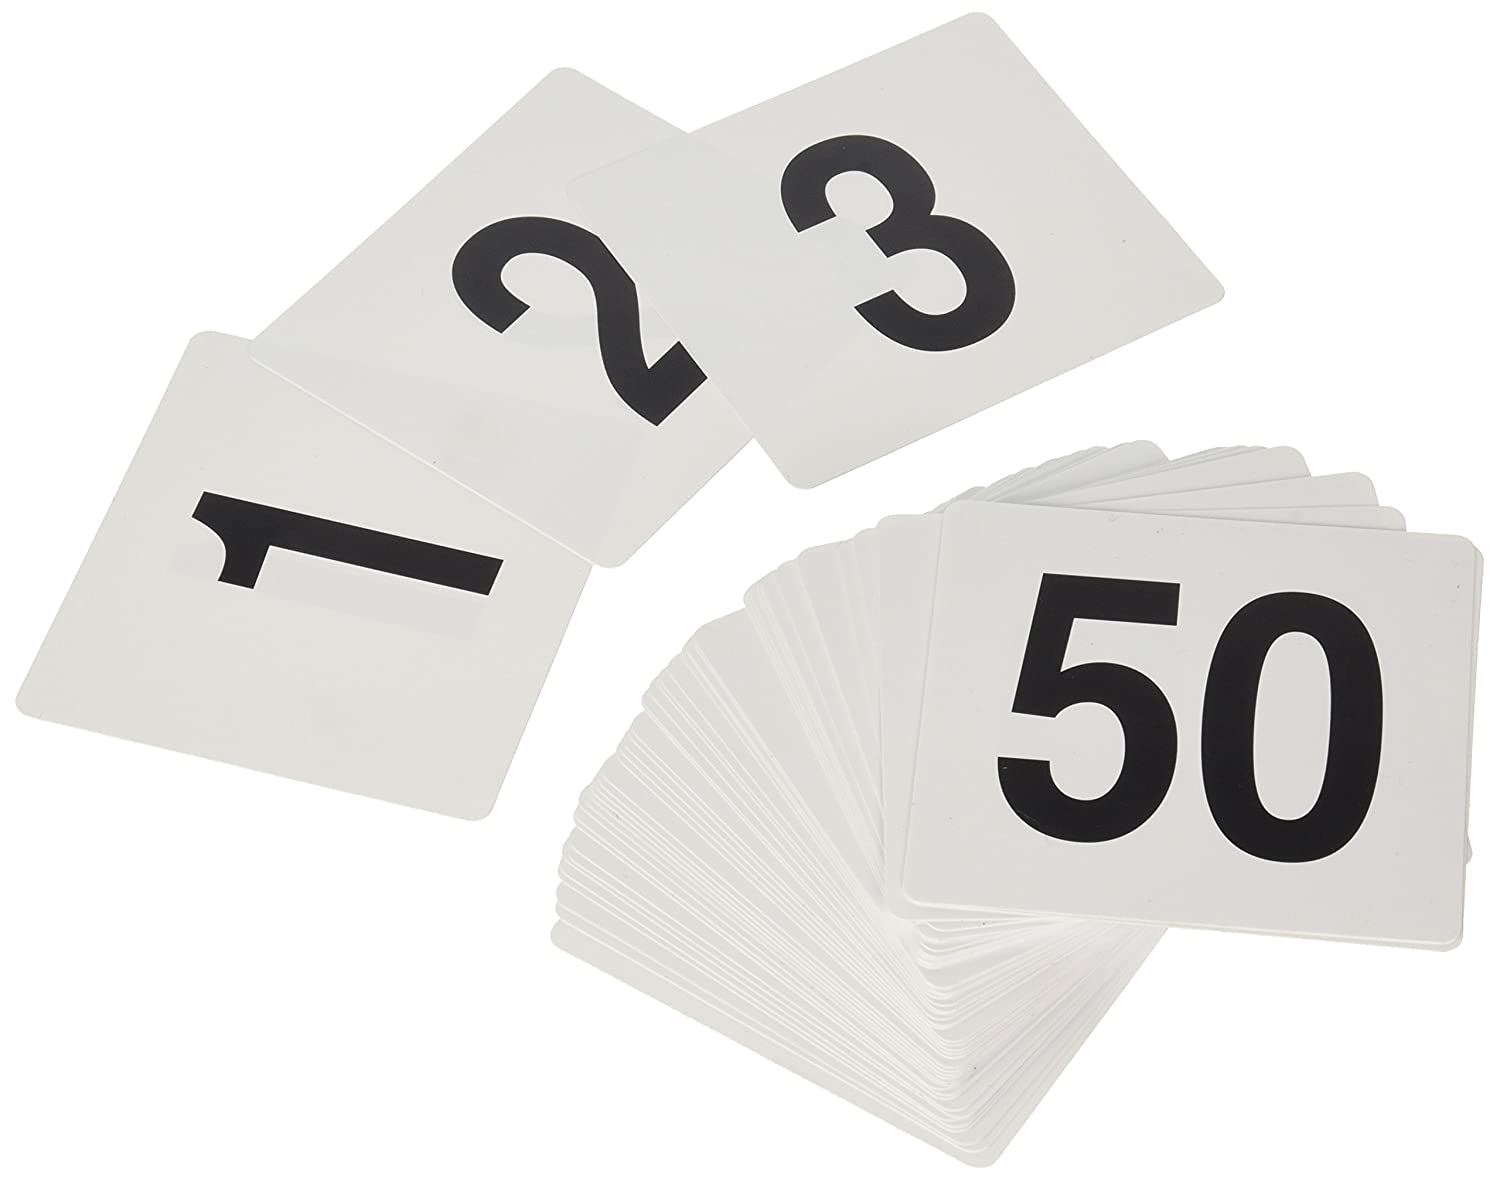 New Star 23176 1 to 50-Double Side Plastic Table Numbers, 4 by 4-Inch, Black on White New Star Foodservice